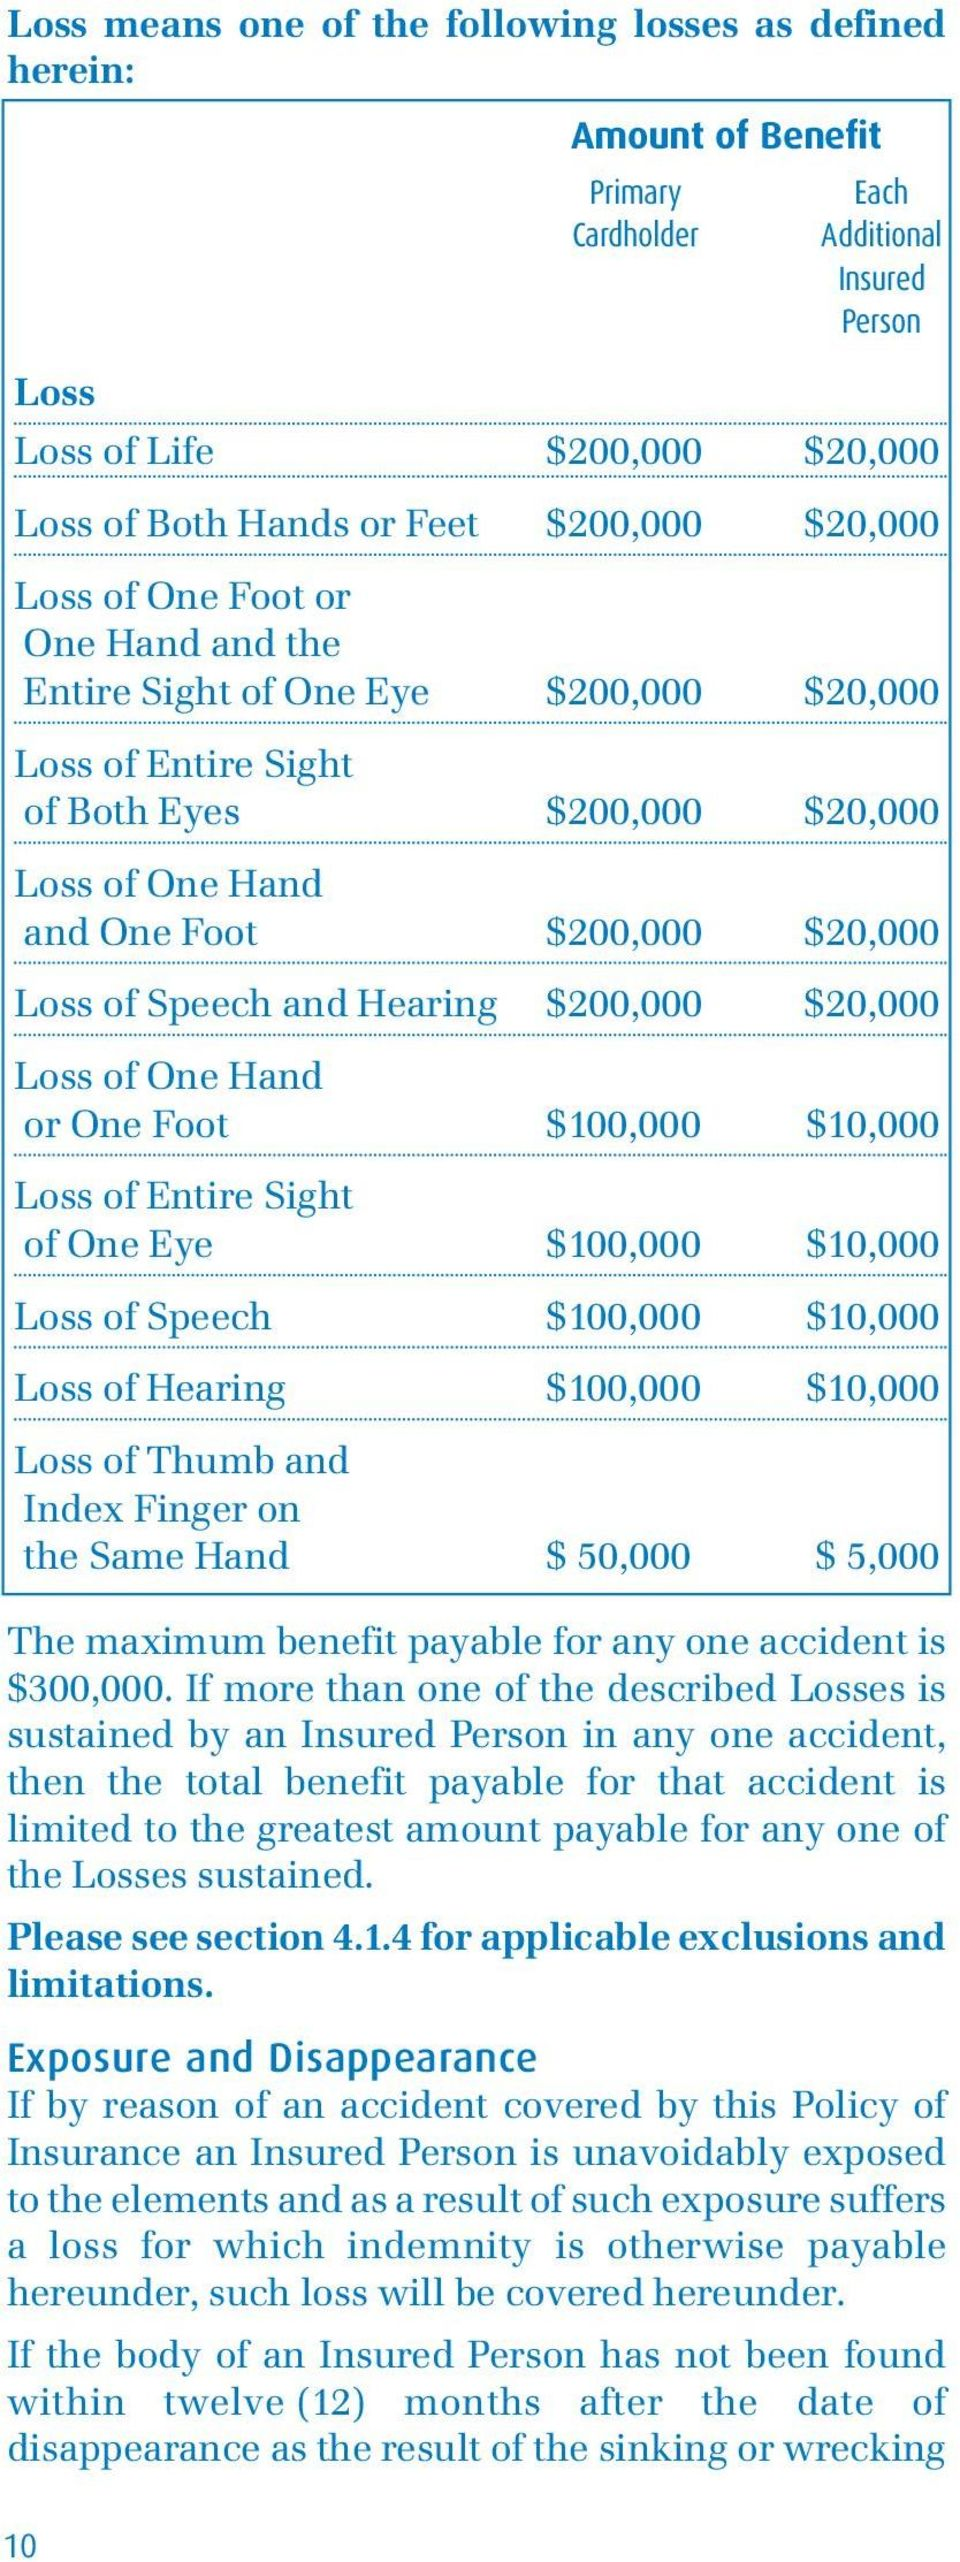 and Hearing $200,000 $20,000 Loss of One Hand or One Foot $100,000 $10,000 Loss of Entire Sight of One Eye $100,000 $10,000 Loss of Speech $100,000 $10,000 Loss of Hearing $100,000 $10,000 Loss of